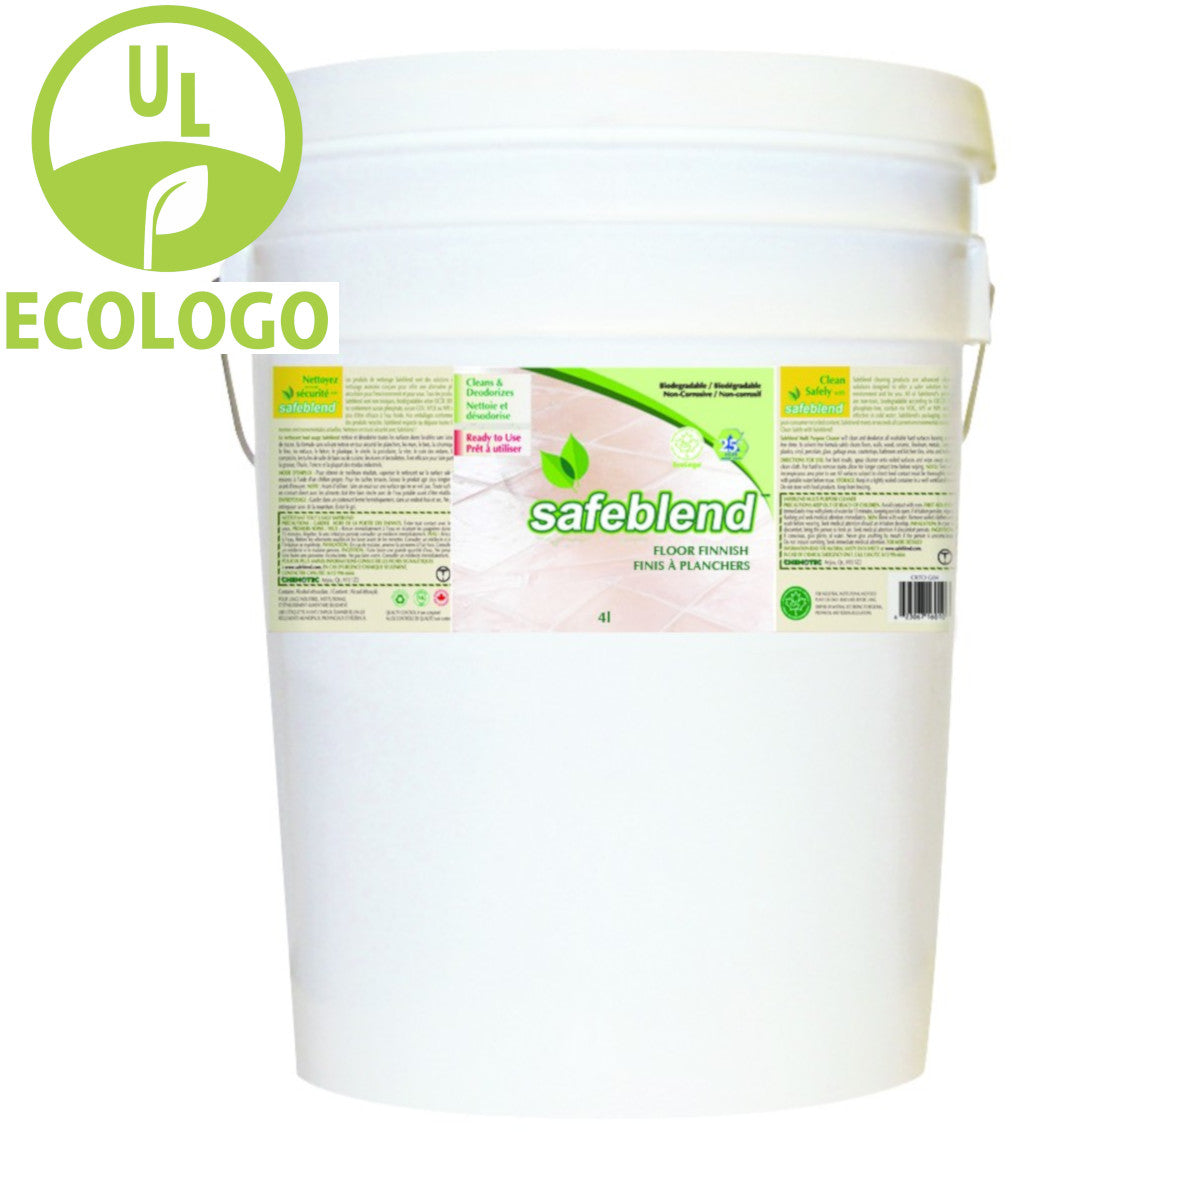 Safeblend FS24 EcoLogo Floor Finish - 20L - Super Vacs